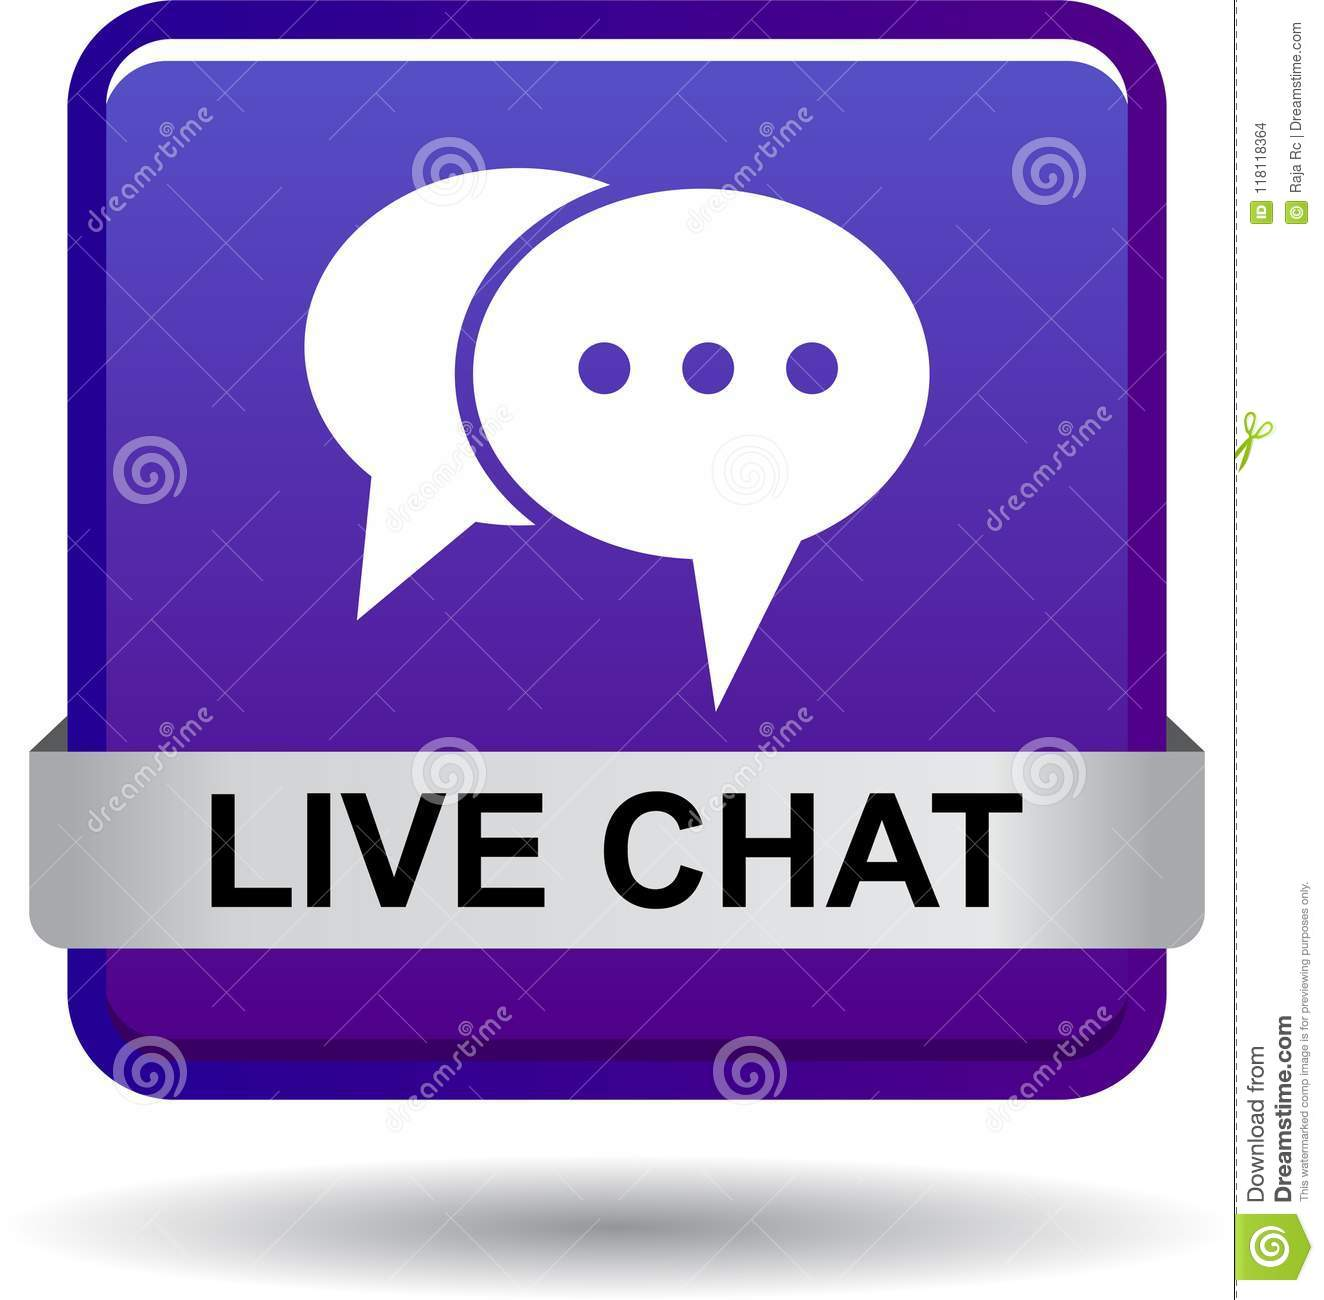 Live Chat Icon Web Button Violet Stock Vector - Illustration